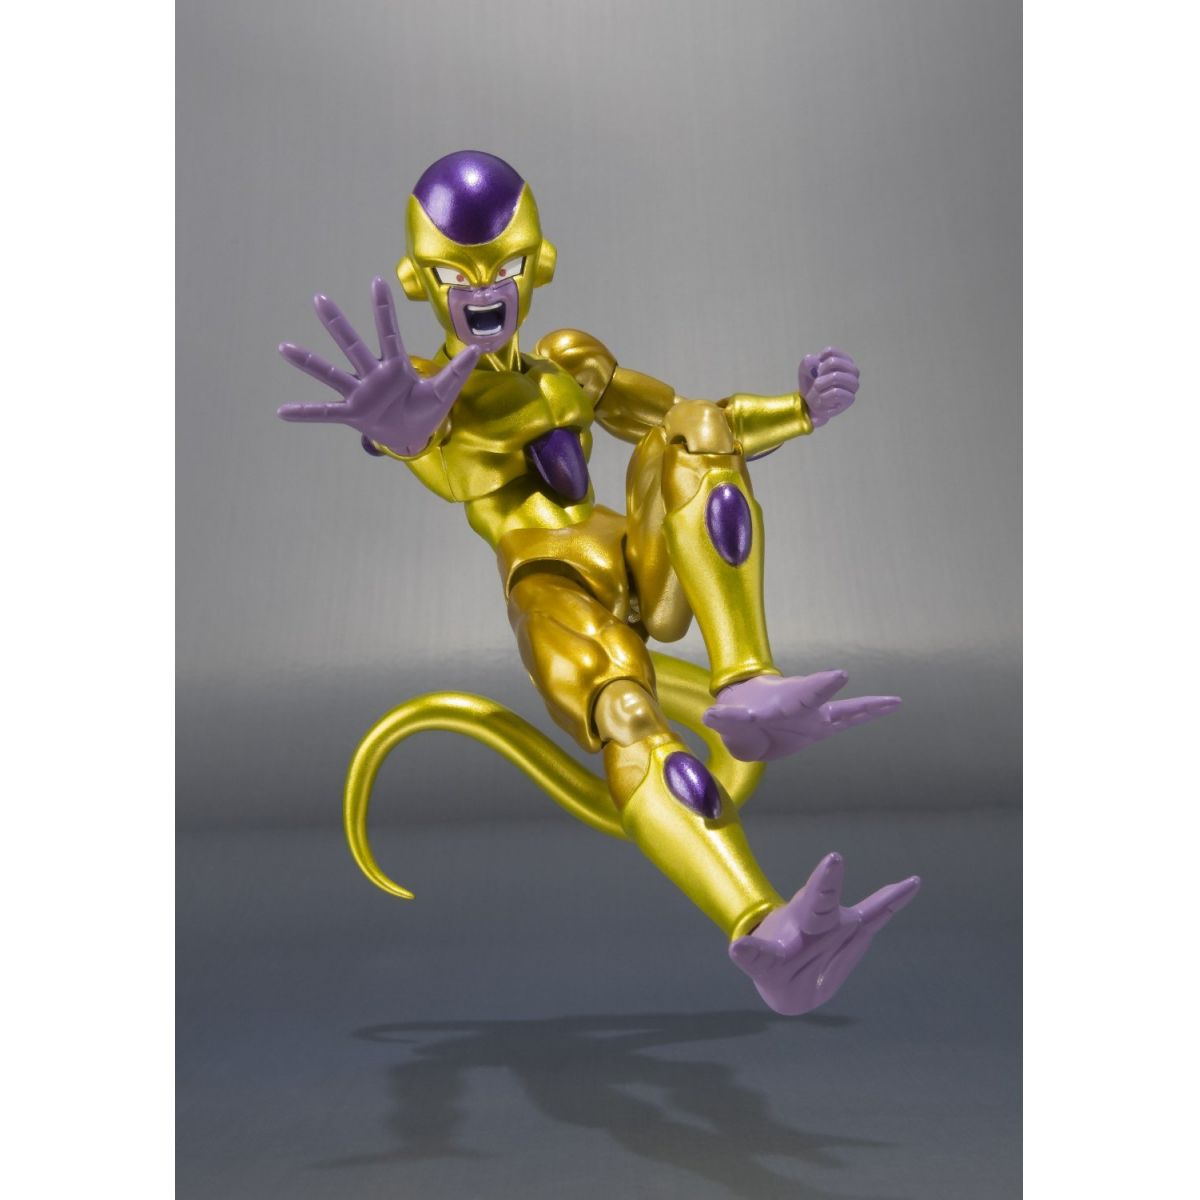 Dragon Ball Z Golden Frieza S.H Figuarts - Bandai